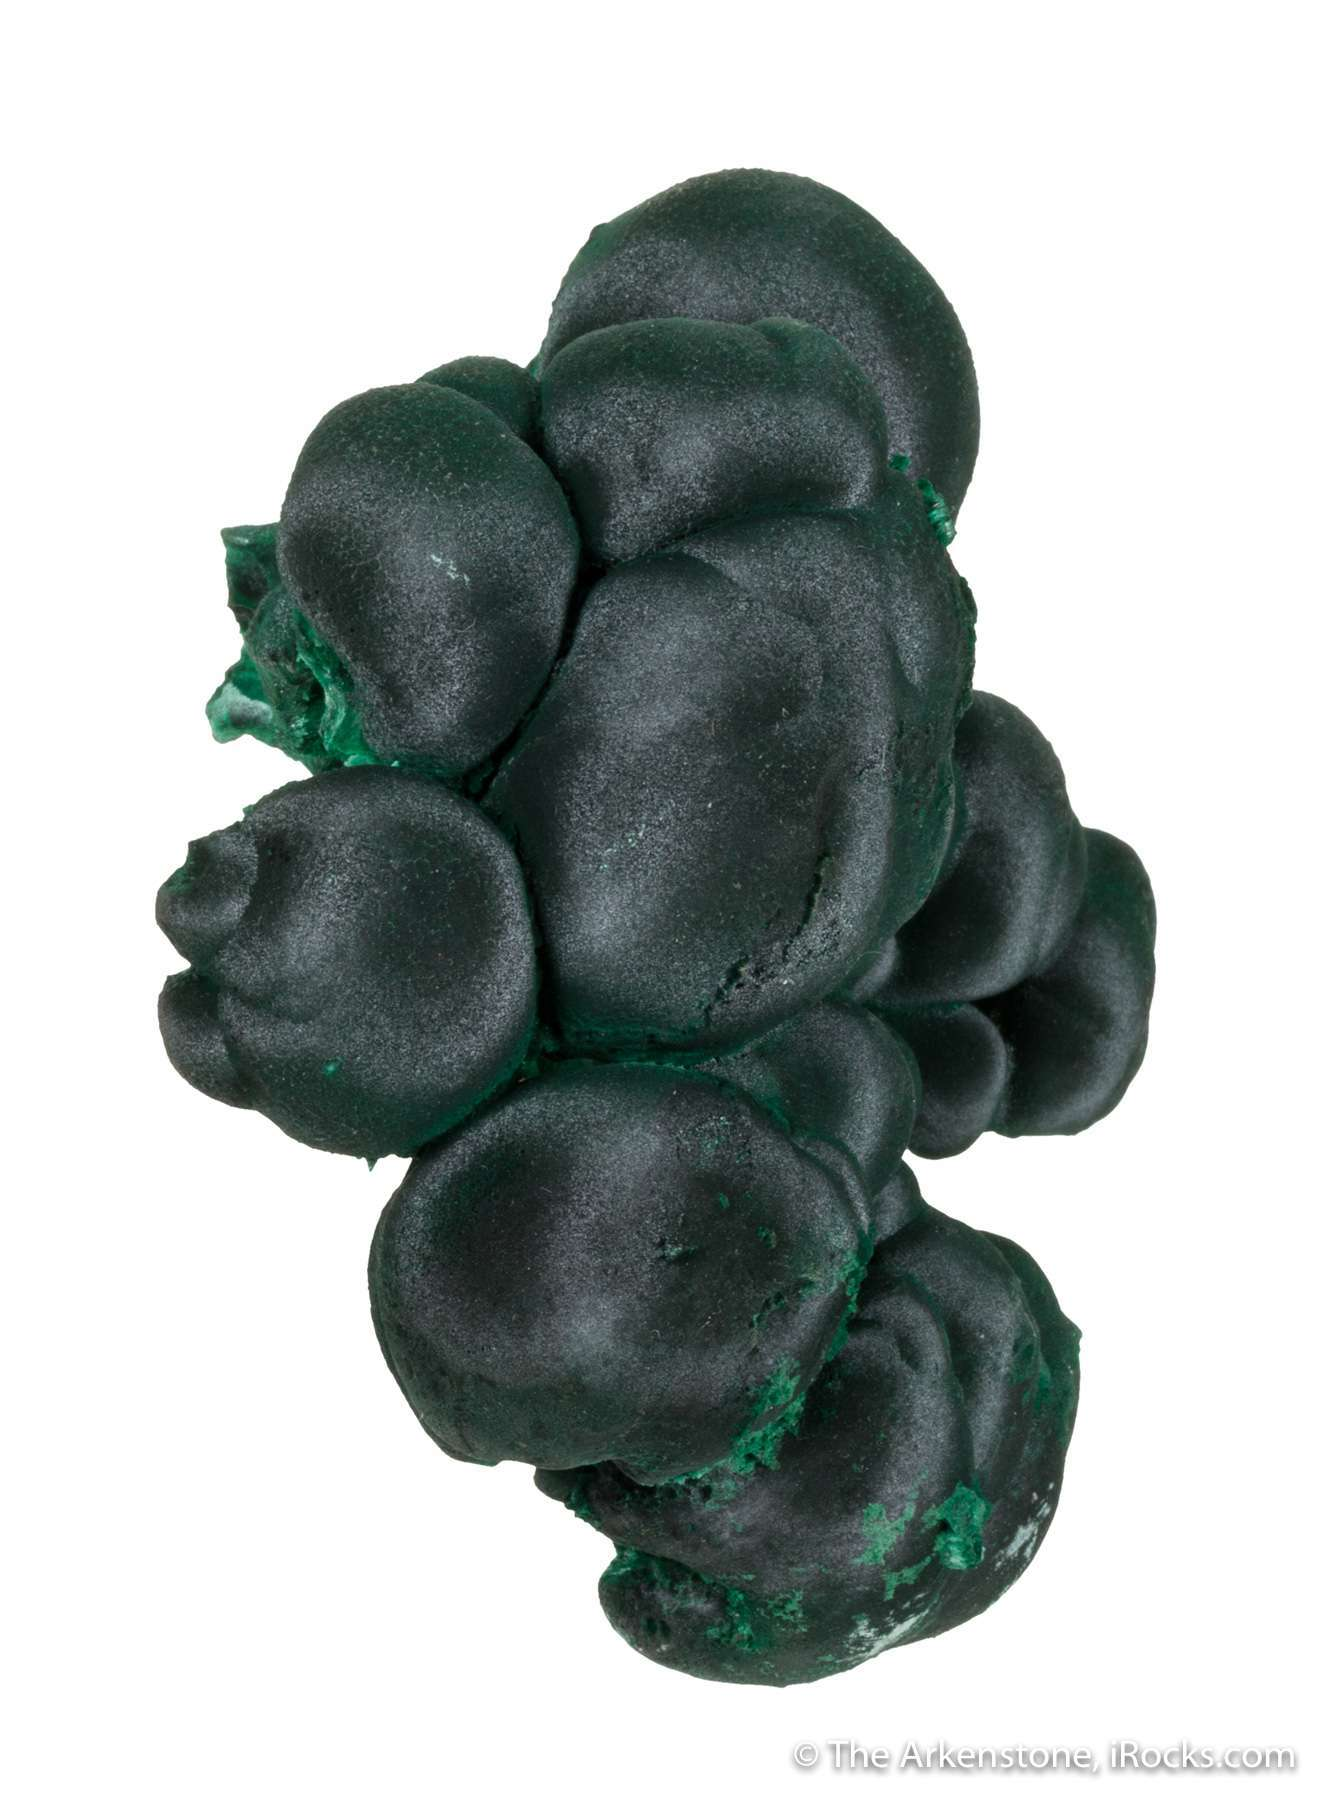 Interconnected botyroids satiny dark forest green malachite 3 cm